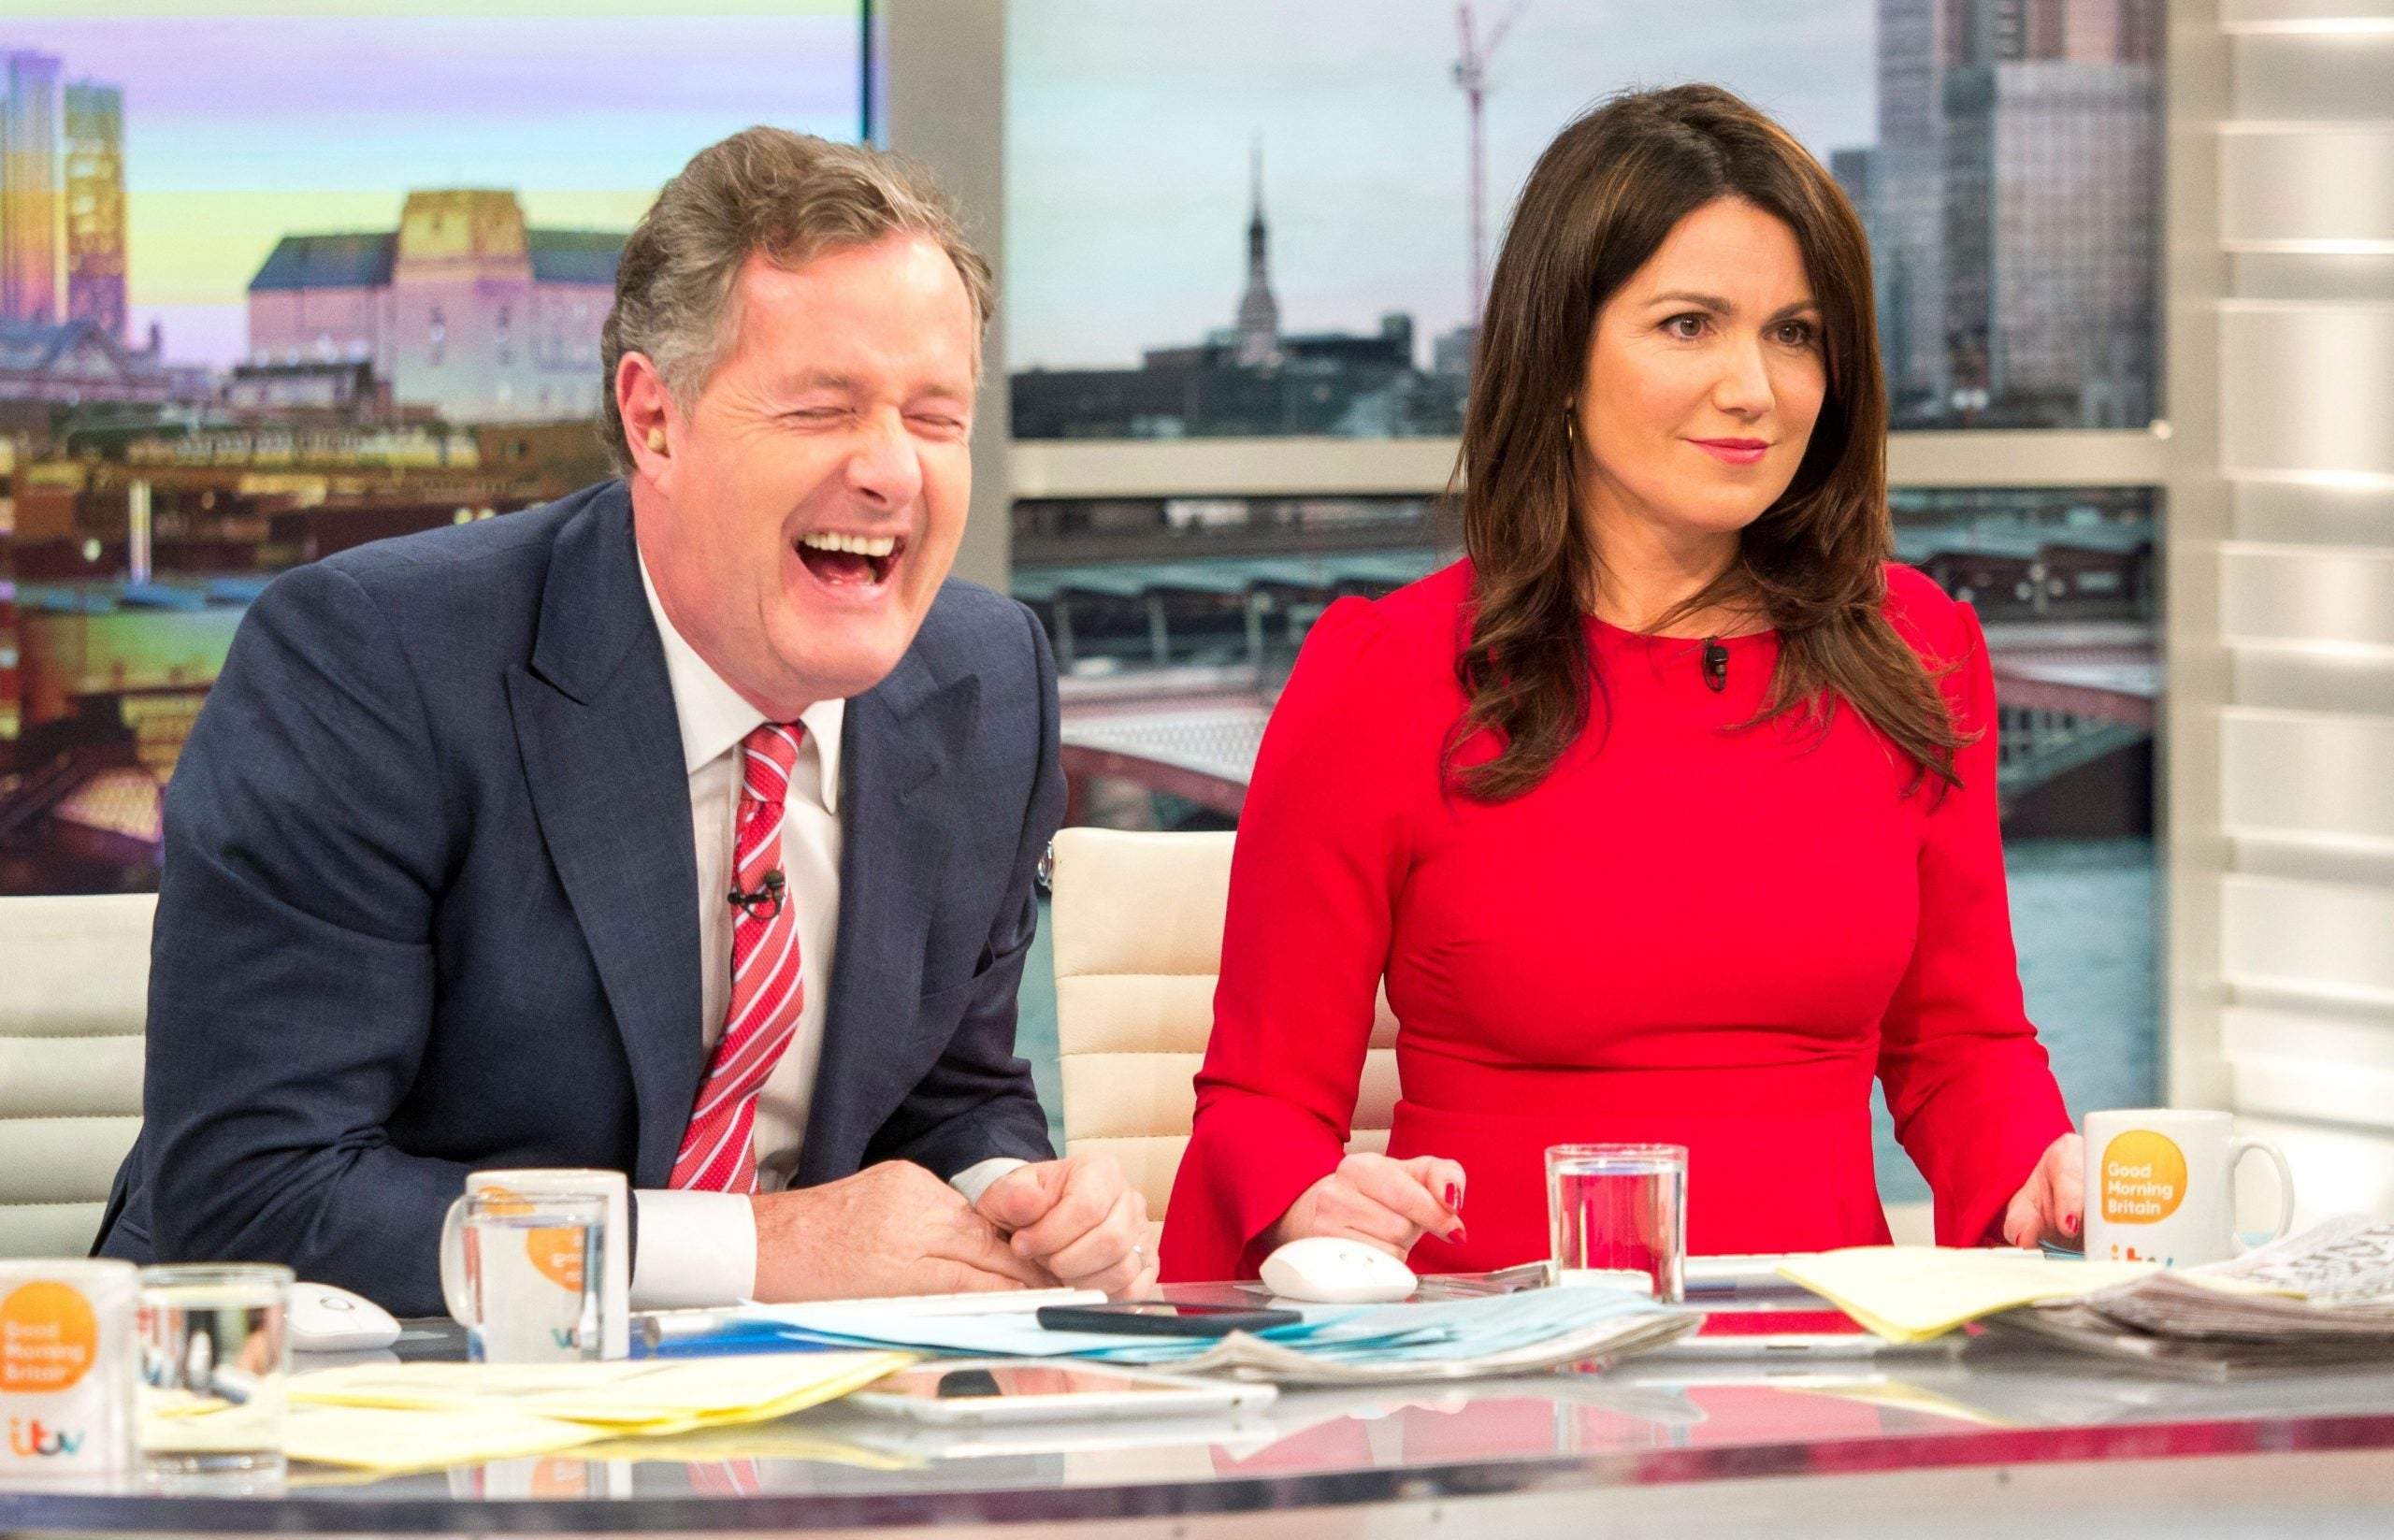 Anyone who cares about sexism should boycott Good Morning Britain and Piers Morgan's clickbait debates